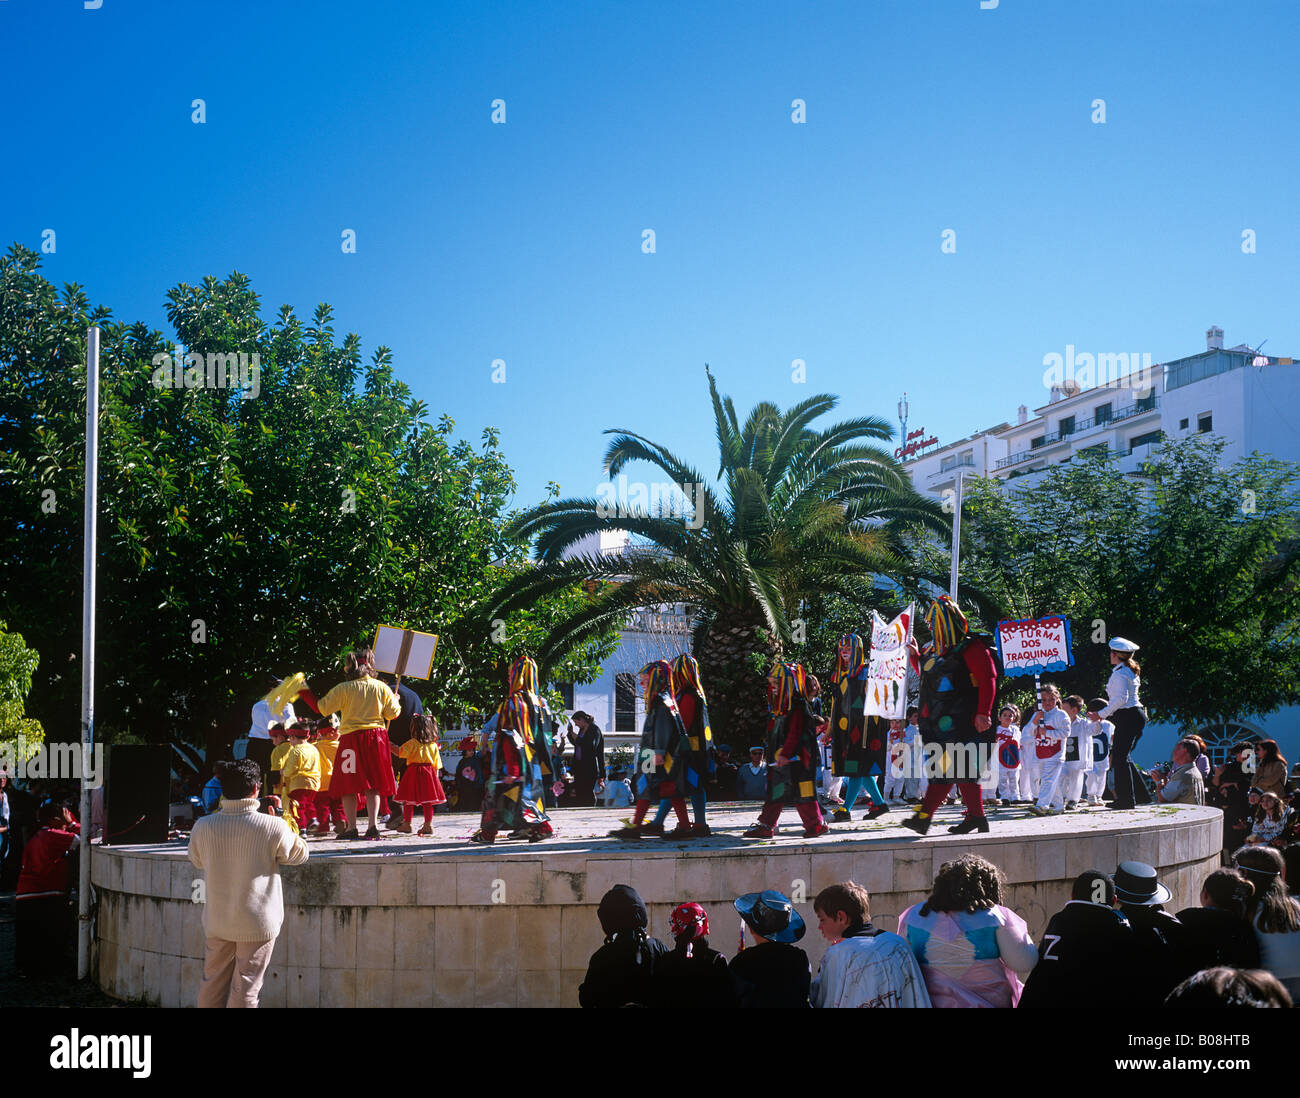 Costumed figures dancing in the central plaza of Albufeira early Febuary at the start of Lent Algarve southern Portugal - Stock Image